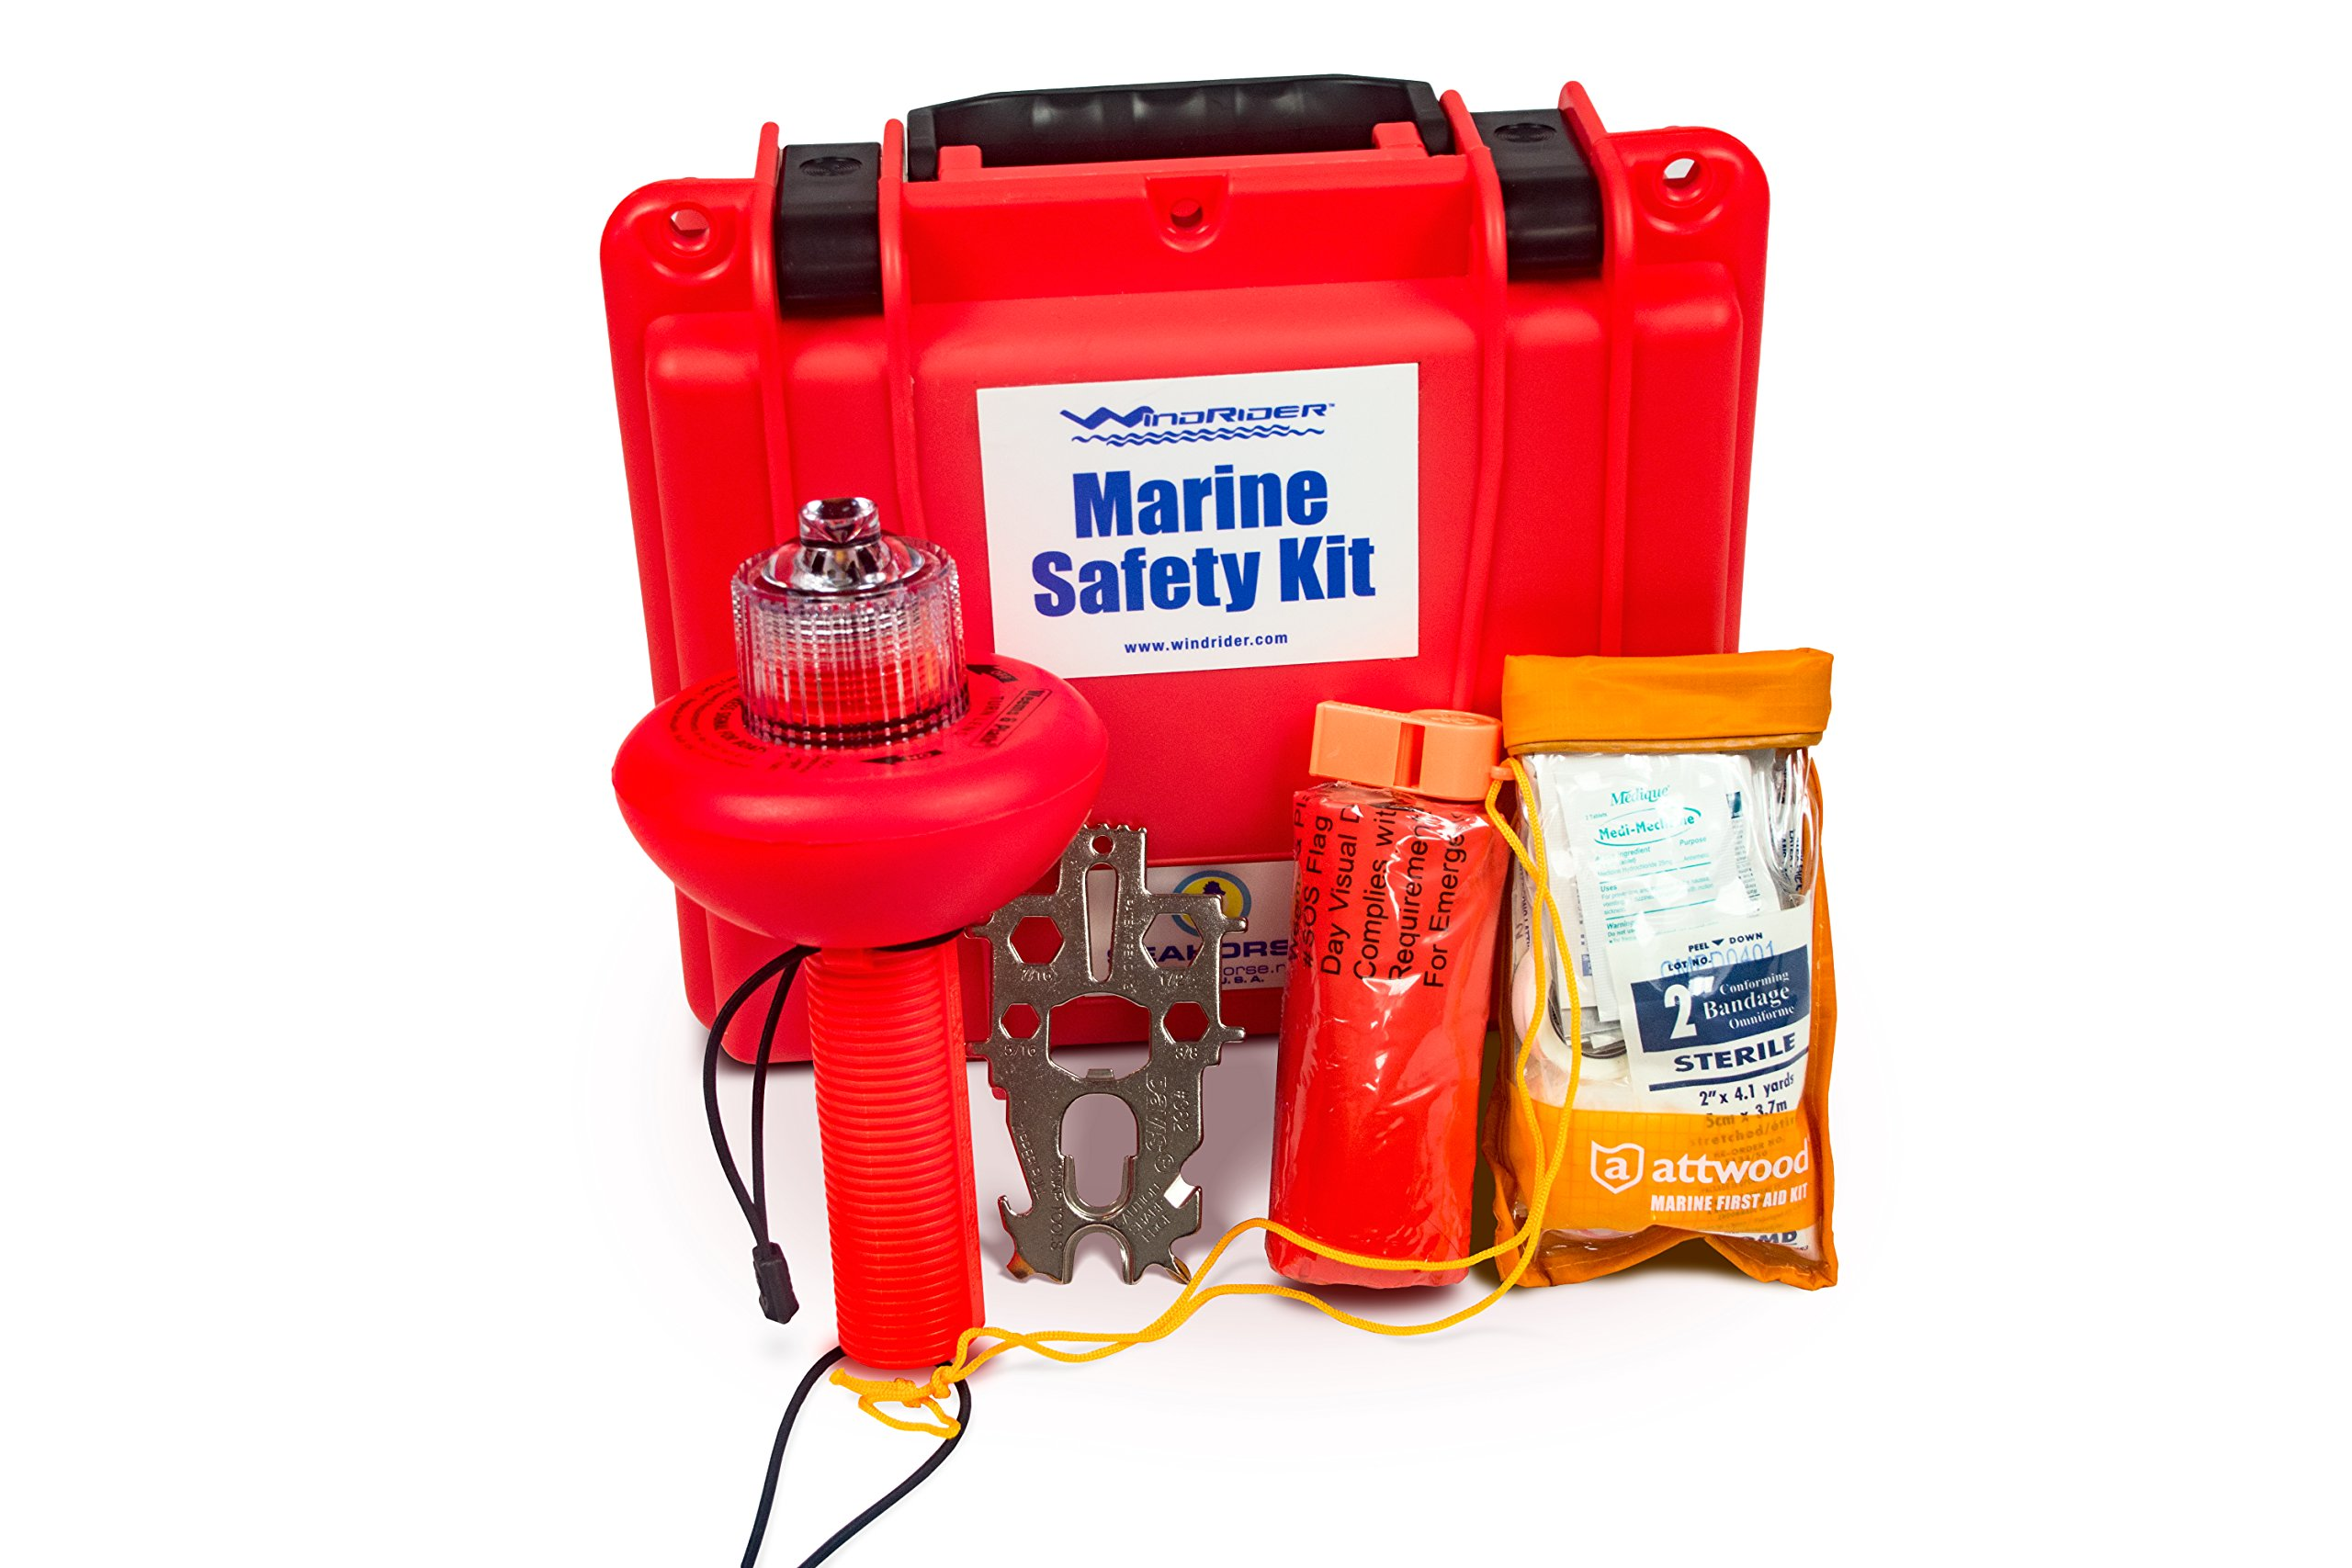 WindRider USCG Boating Safety Kit - Electronic Flare - First Aid Kit - Whistle - Multi Tool - Waterproof Case (Plastic) by WindRider